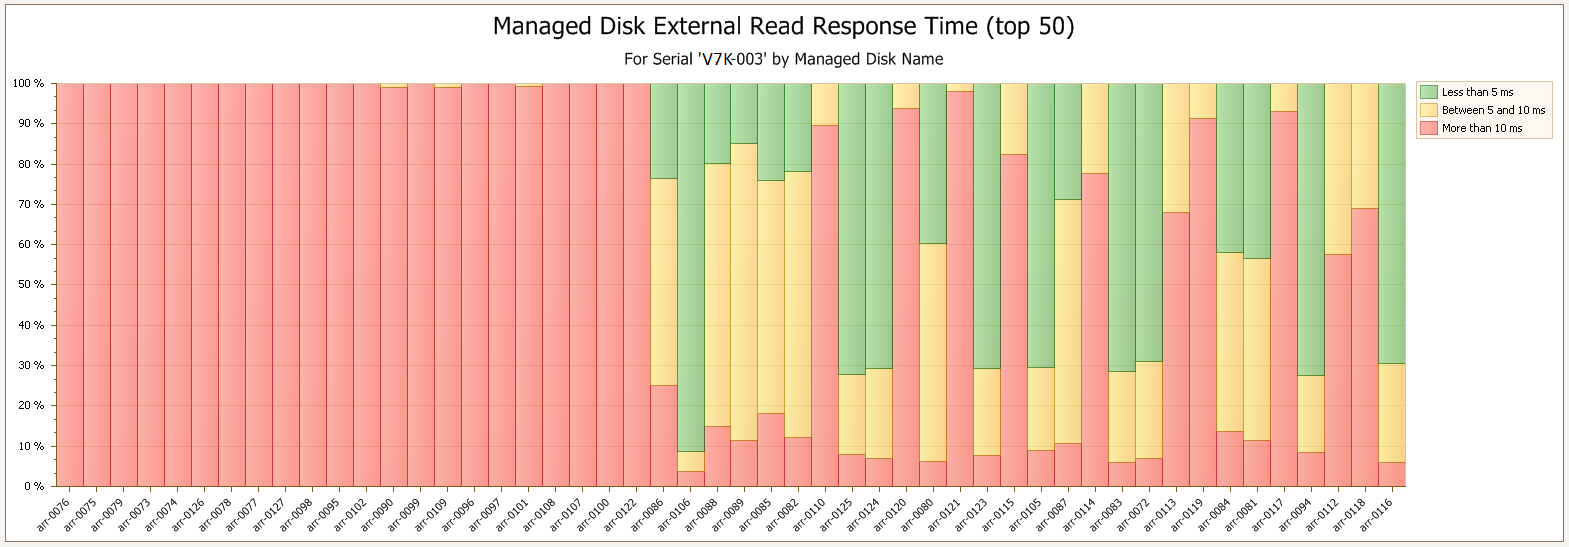 Figure 9: Managed Disks External Read Response Time SLA Chart illustrates a situation in which the read response times to a significant number of the mdisks is exceeding desirable service levels.